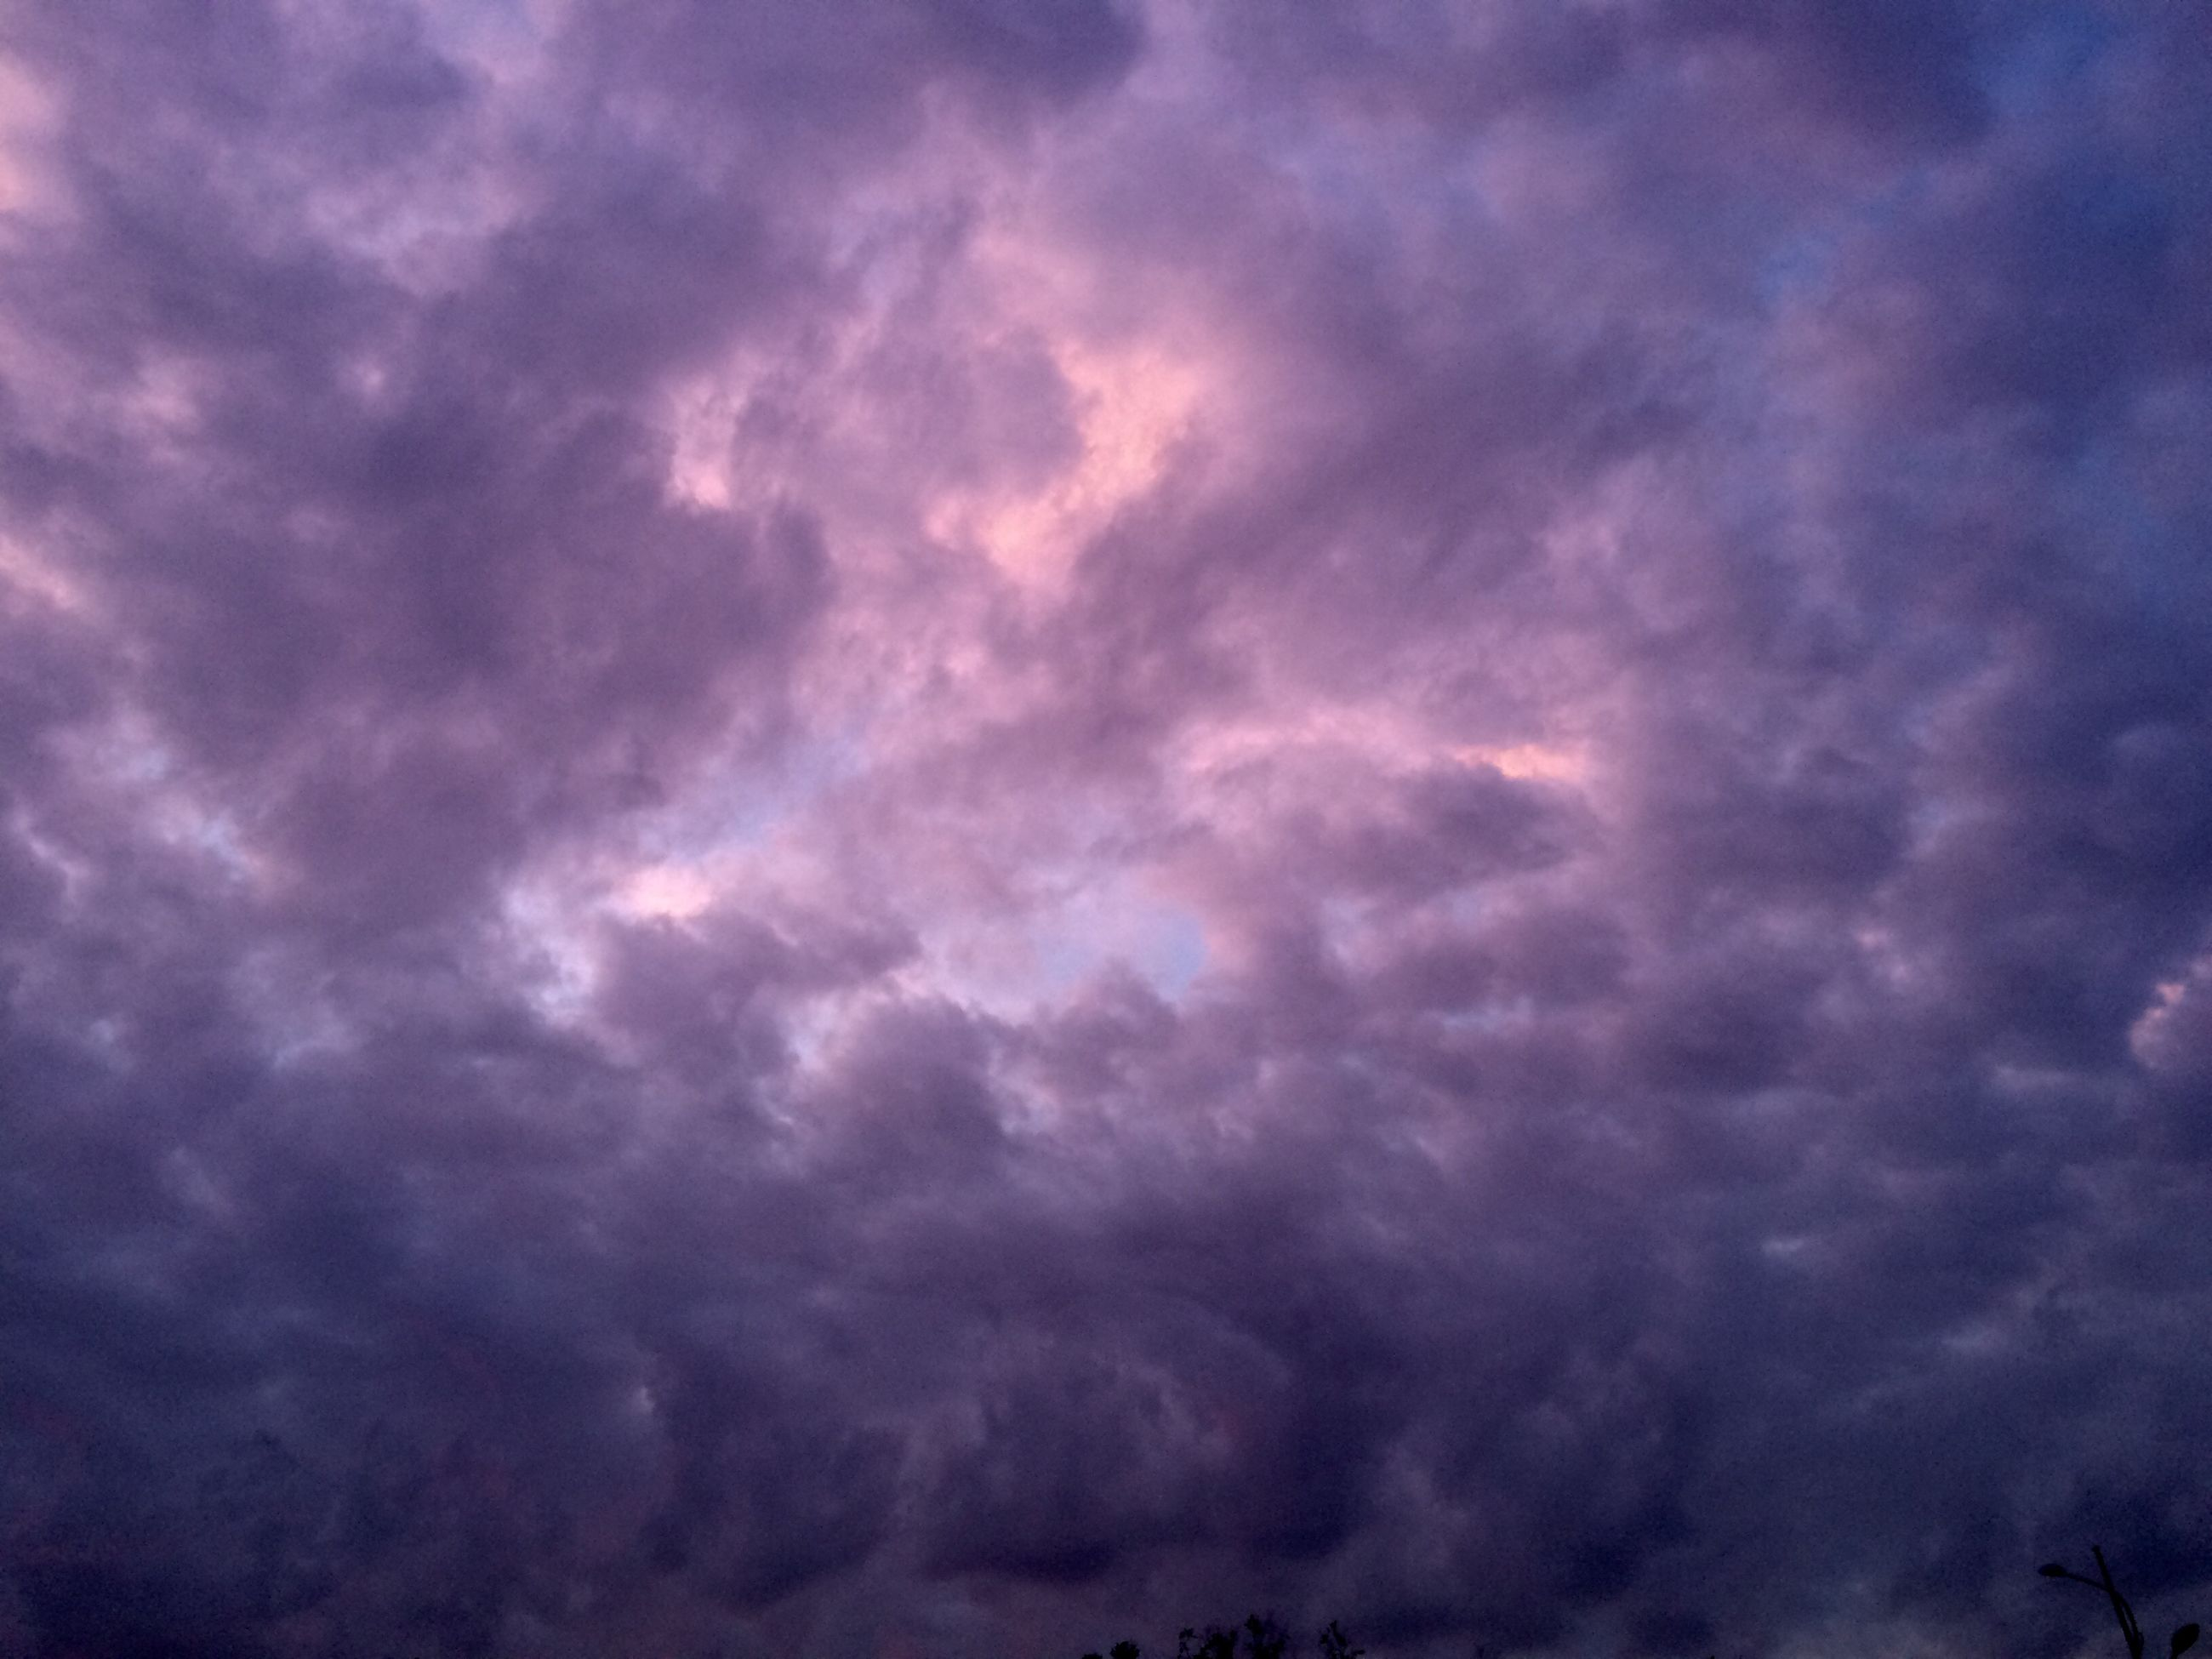 cloud - sky, sky, low angle view, cloudy, sky only, cloudscape, beauty in nature, weather, tranquility, scenics, nature, overcast, backgrounds, tranquil scene, dramatic sky, full frame, storm cloud, cloud, idyllic, atmospheric mood